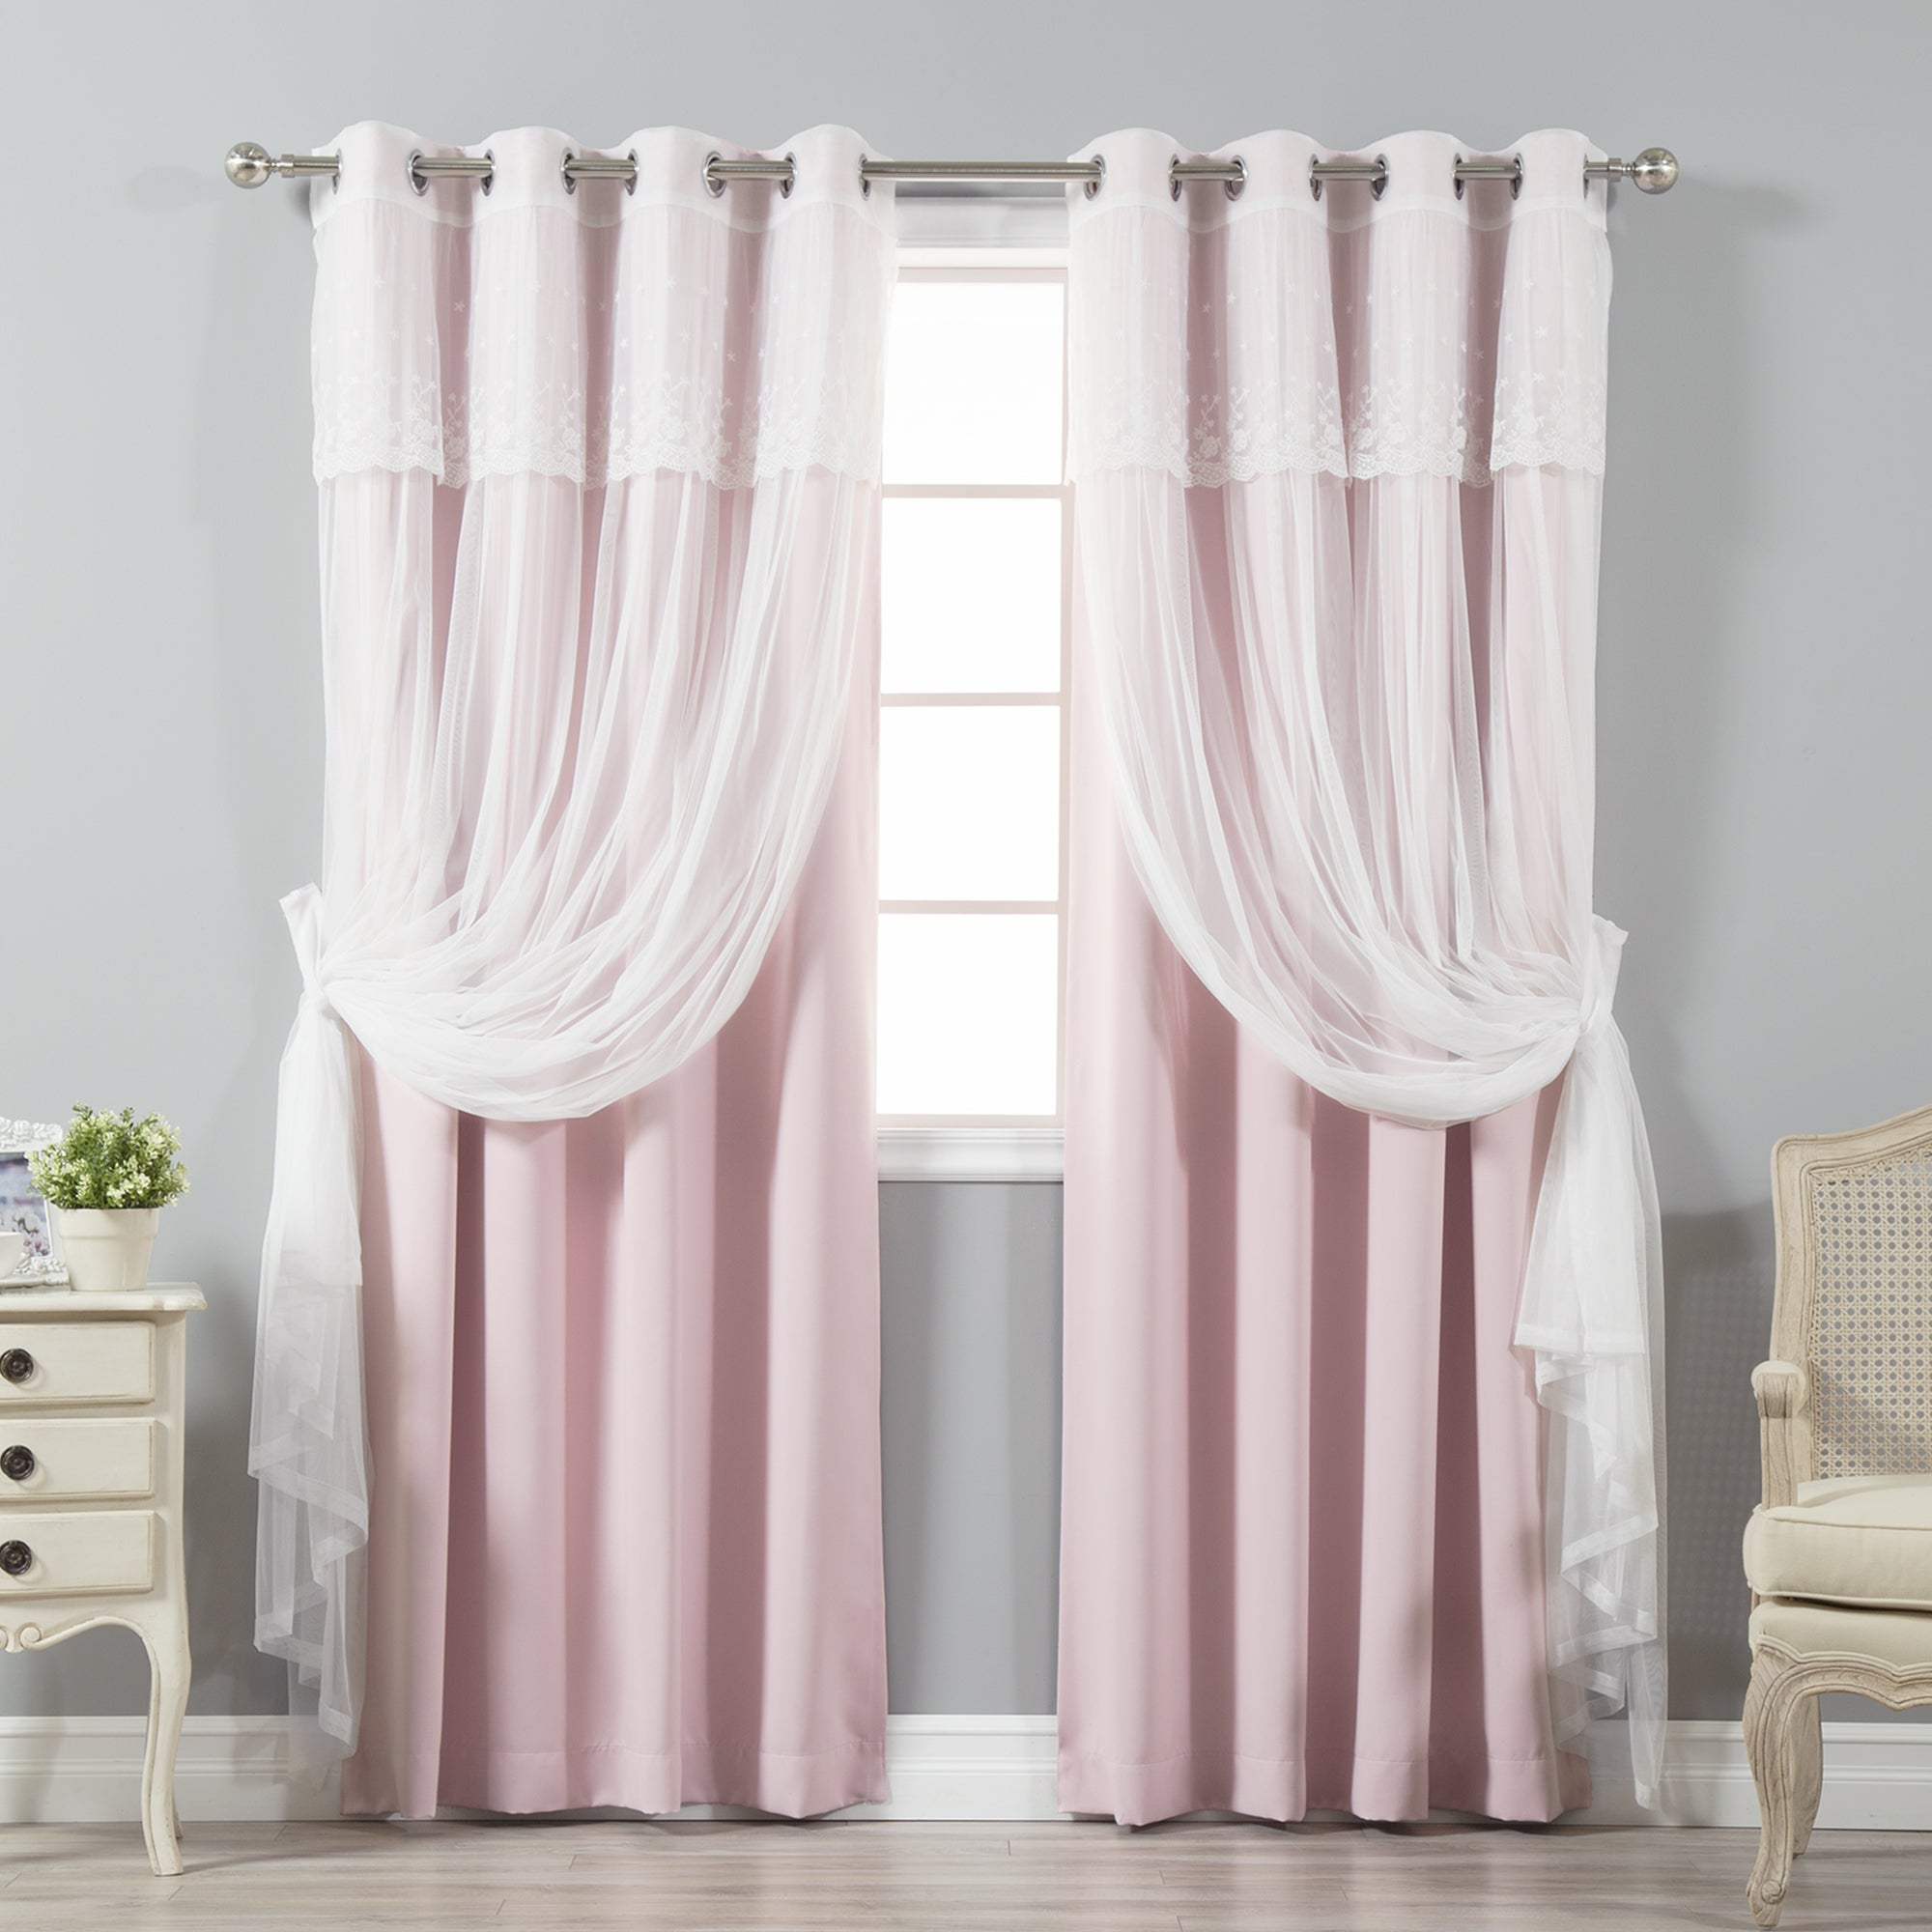 Aurora Home Mix & Match Tulle Sheer With Attached Valance And Blackout 4 Piece Curtain Panel Pair Throughout Tulle Sheer With Attached Valance And Blackout 4 Piece Curtain Panel Pairs (View 3 of 30)